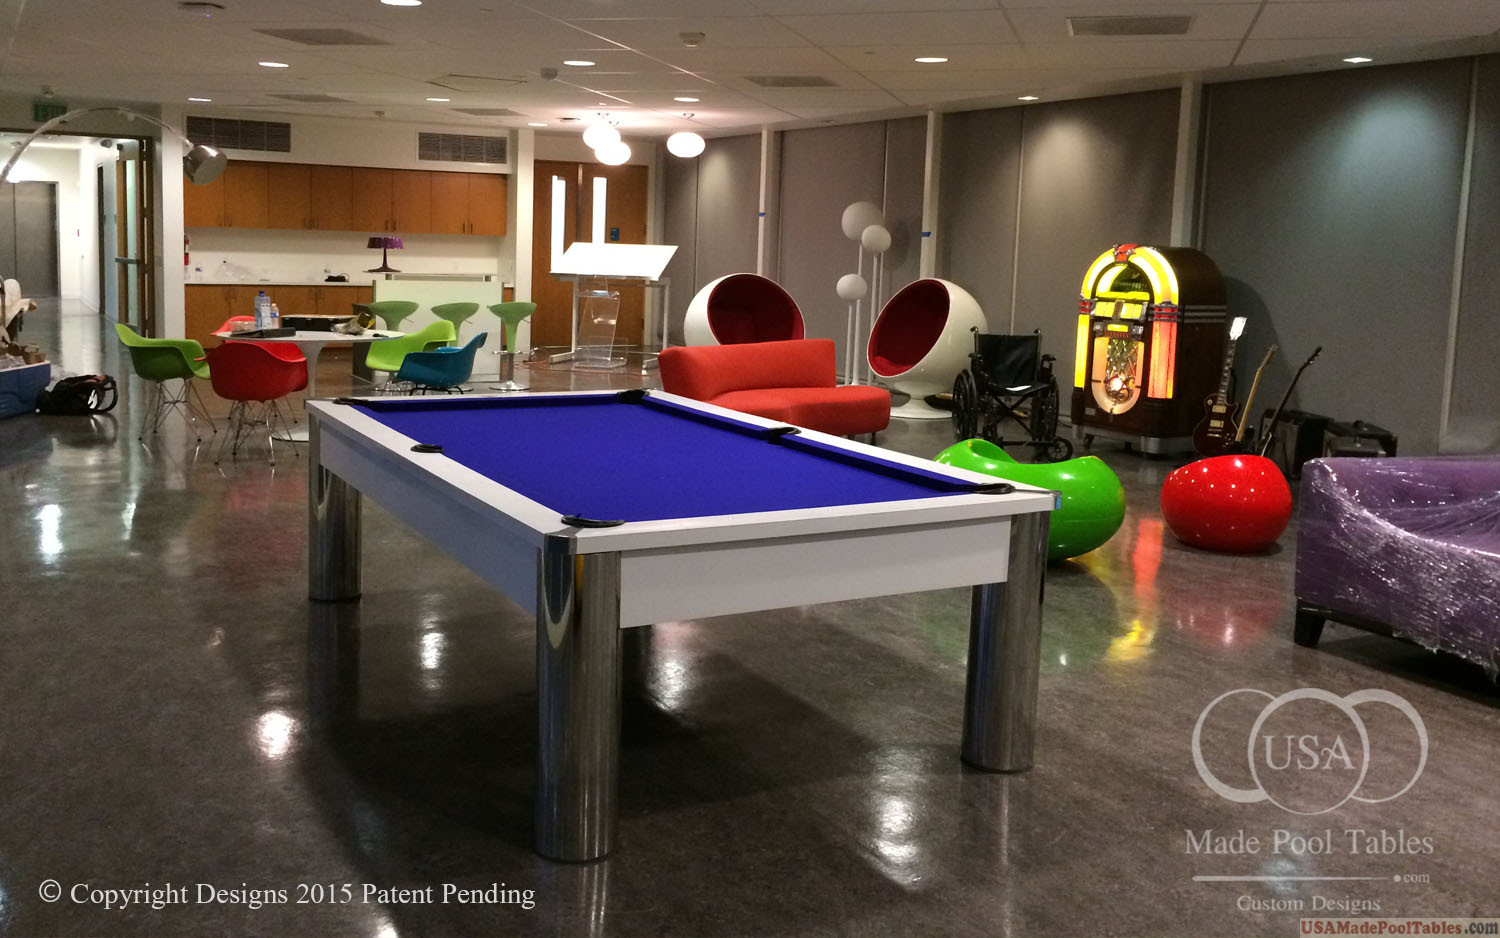 Cosmopolitan Contemporary Pool Tables Modern Pool Table